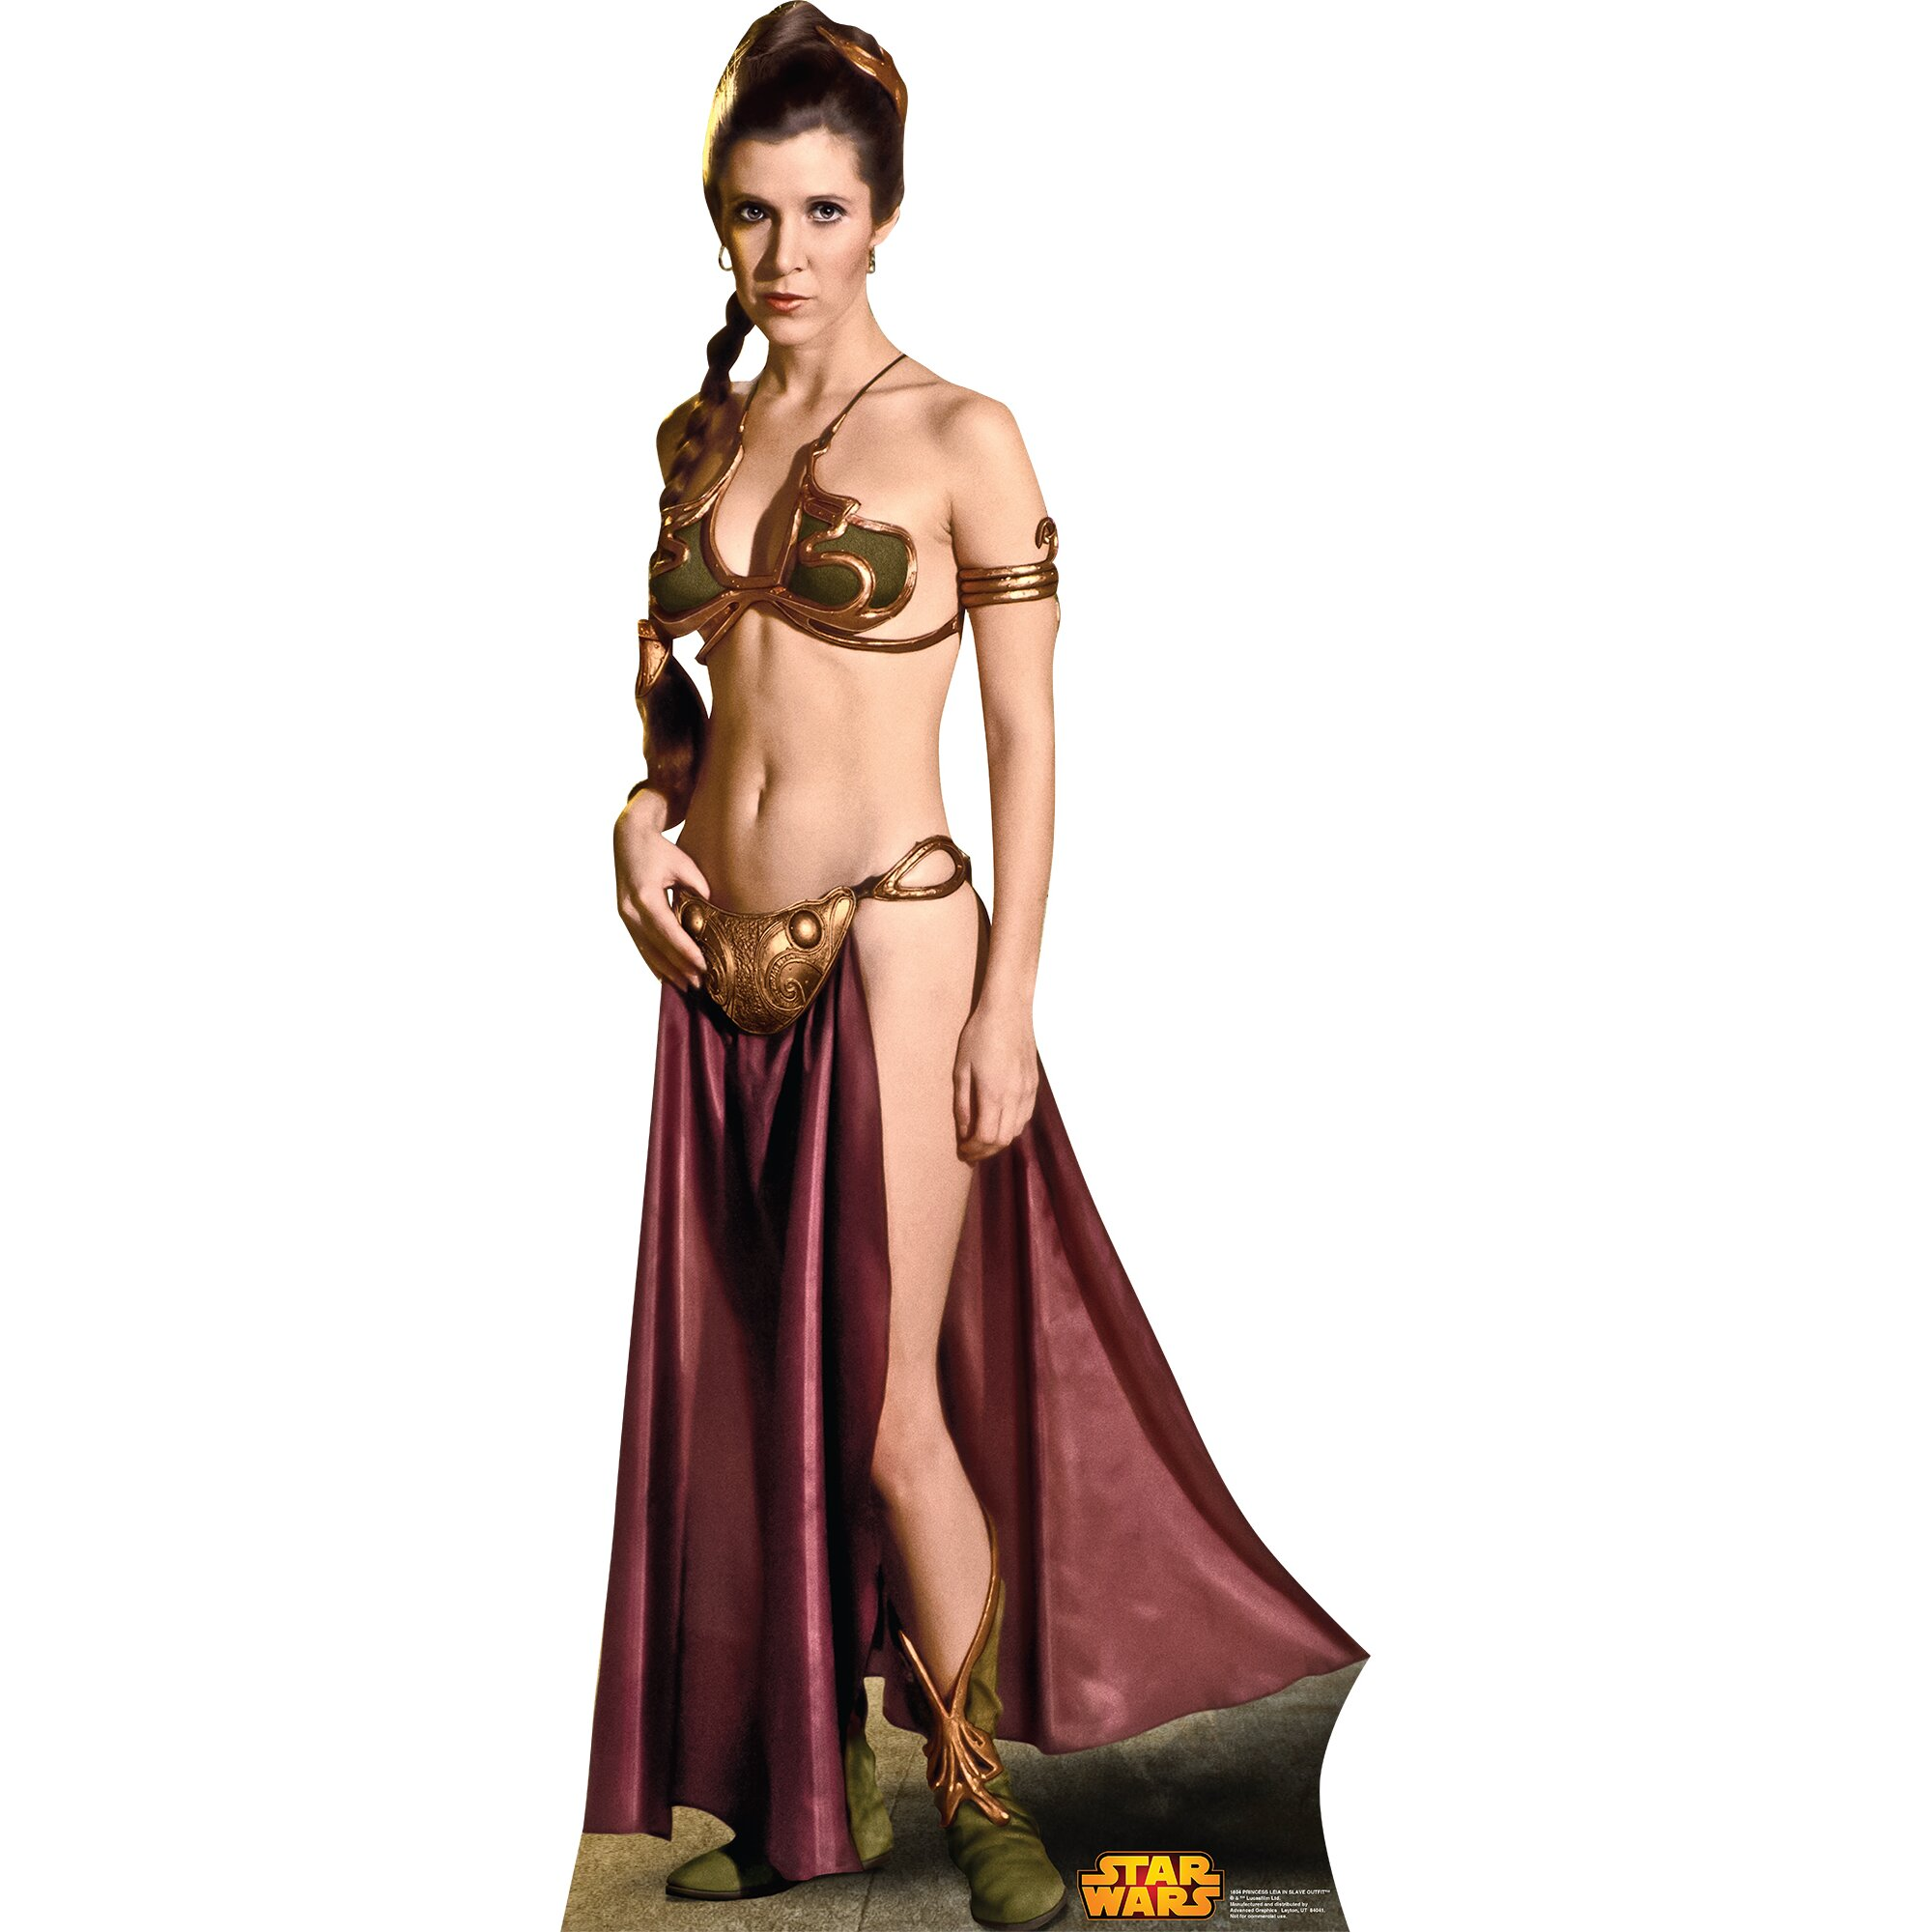 Star Wars Princess Leia Slave Girl Cardboard Standup | Wayfair